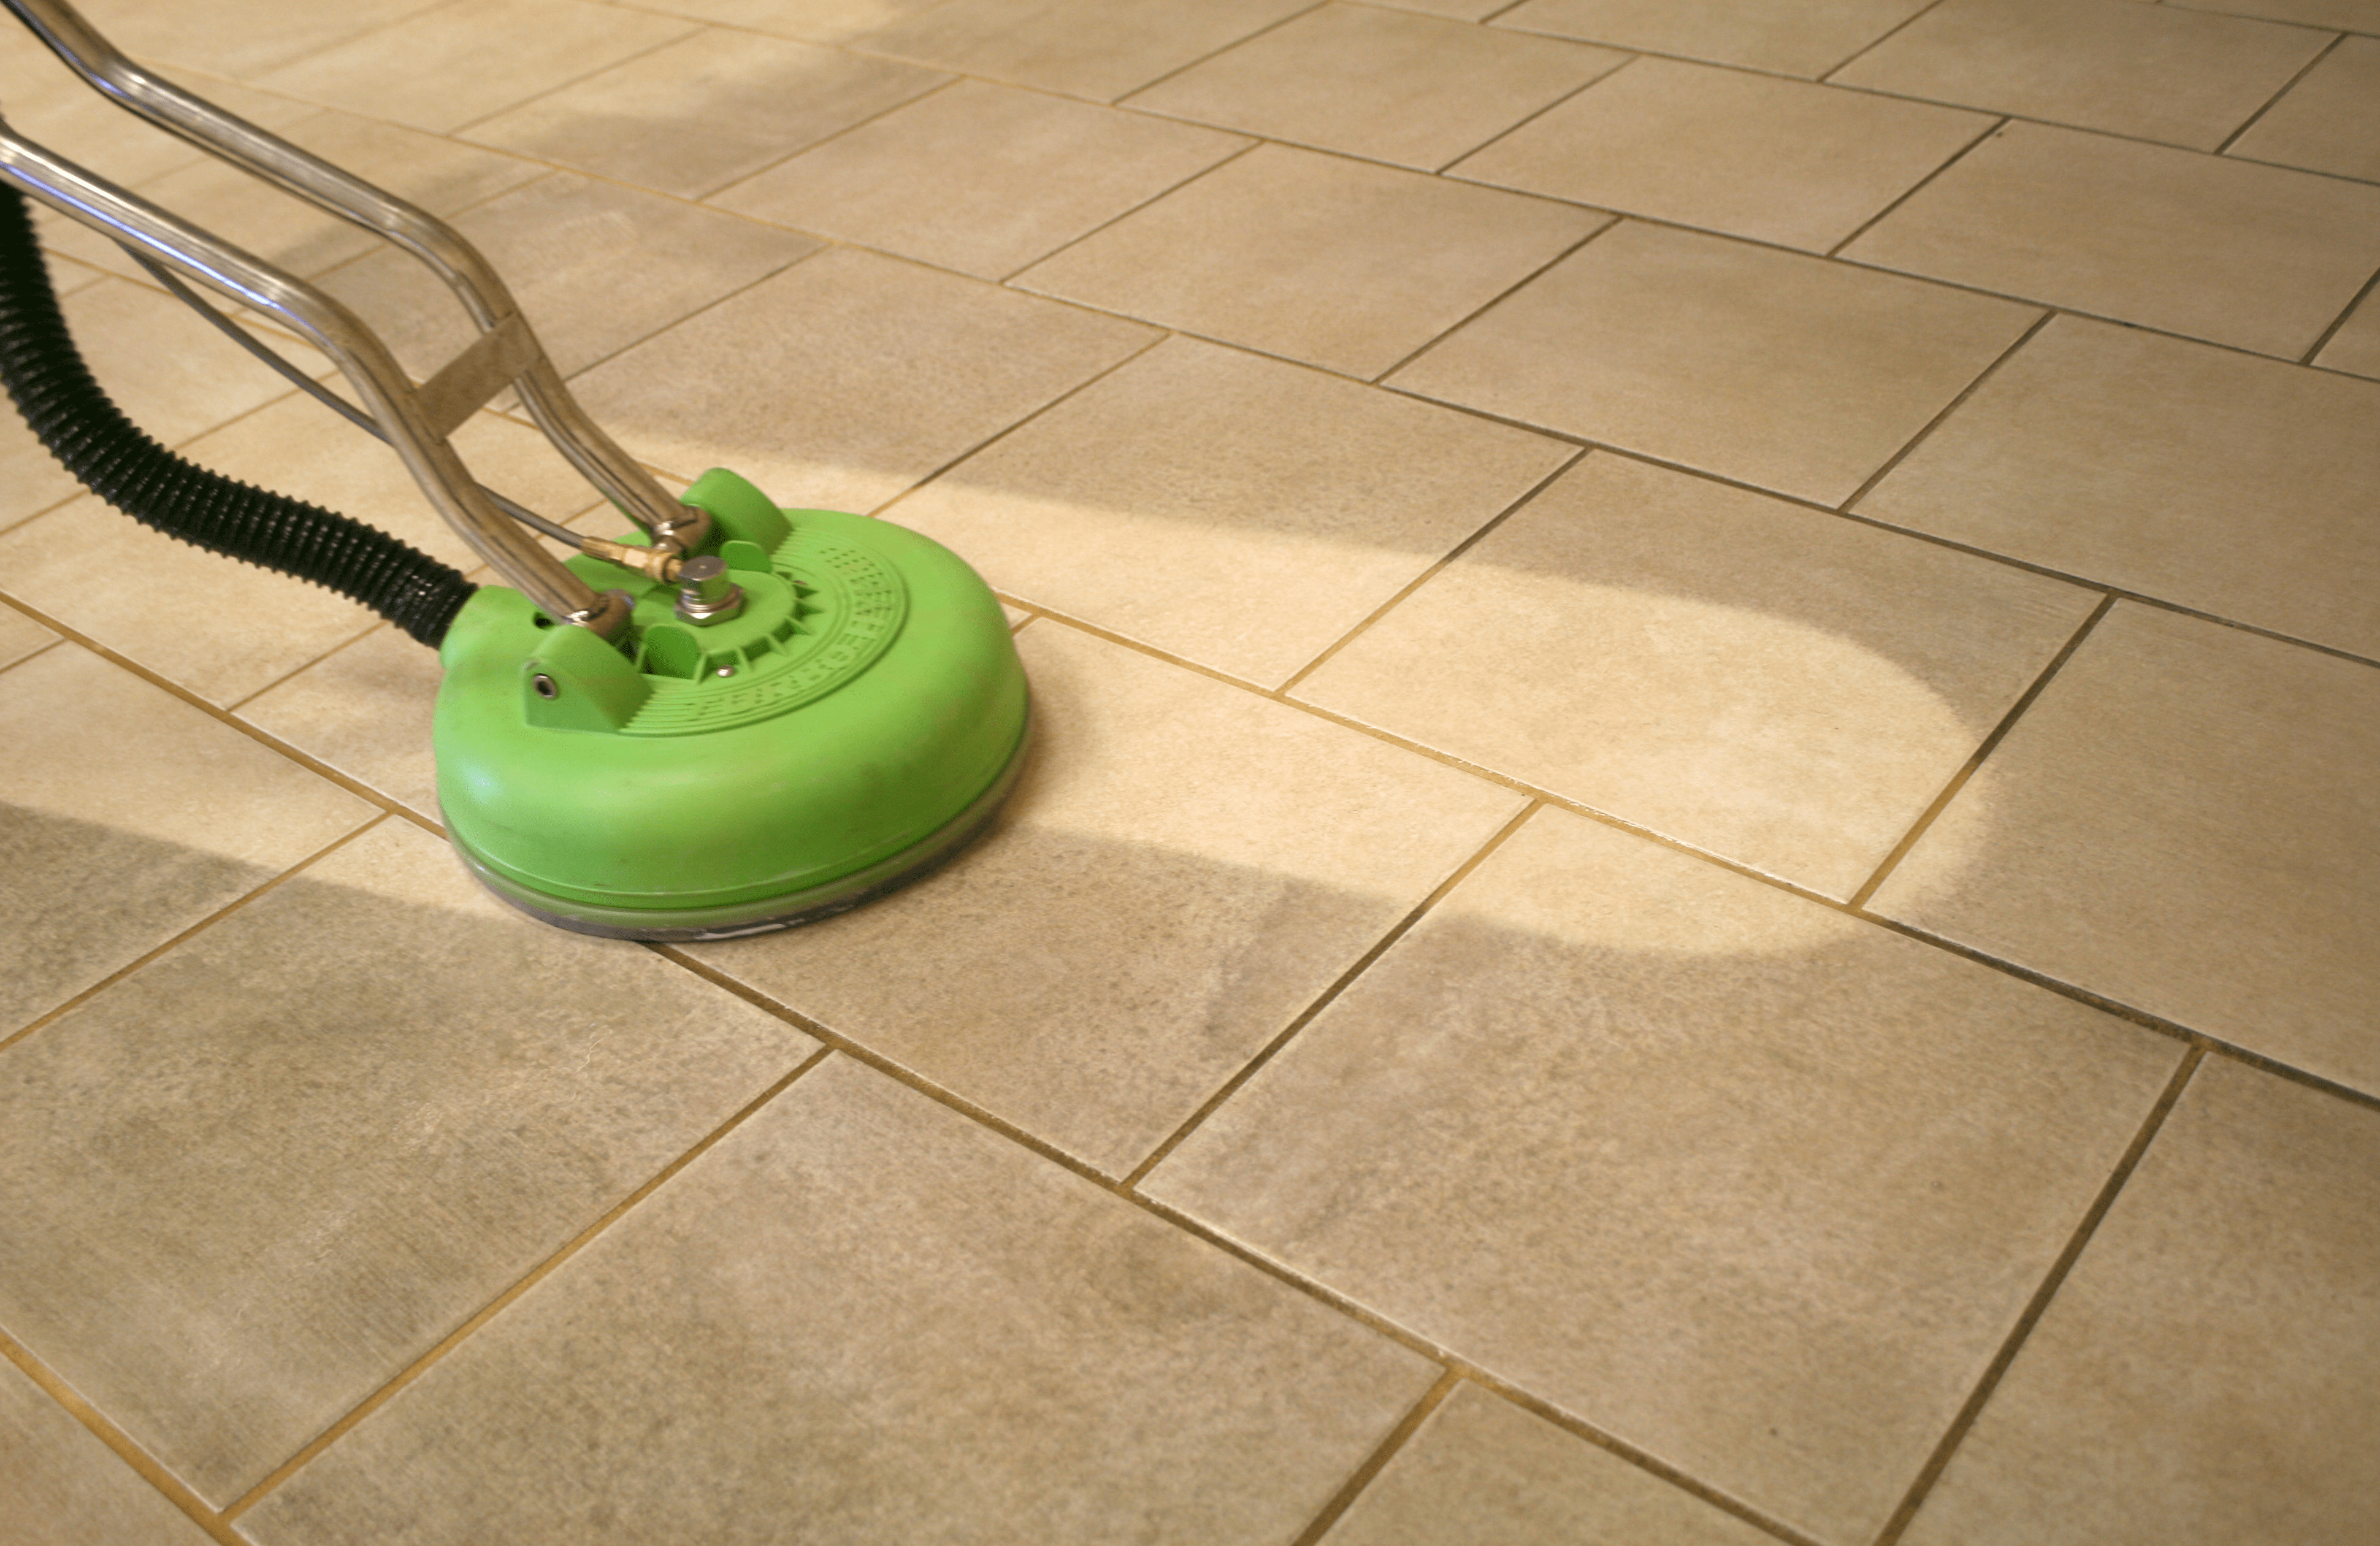 How to clean ceramic tile floors and grout can be one of your frequently asked questions